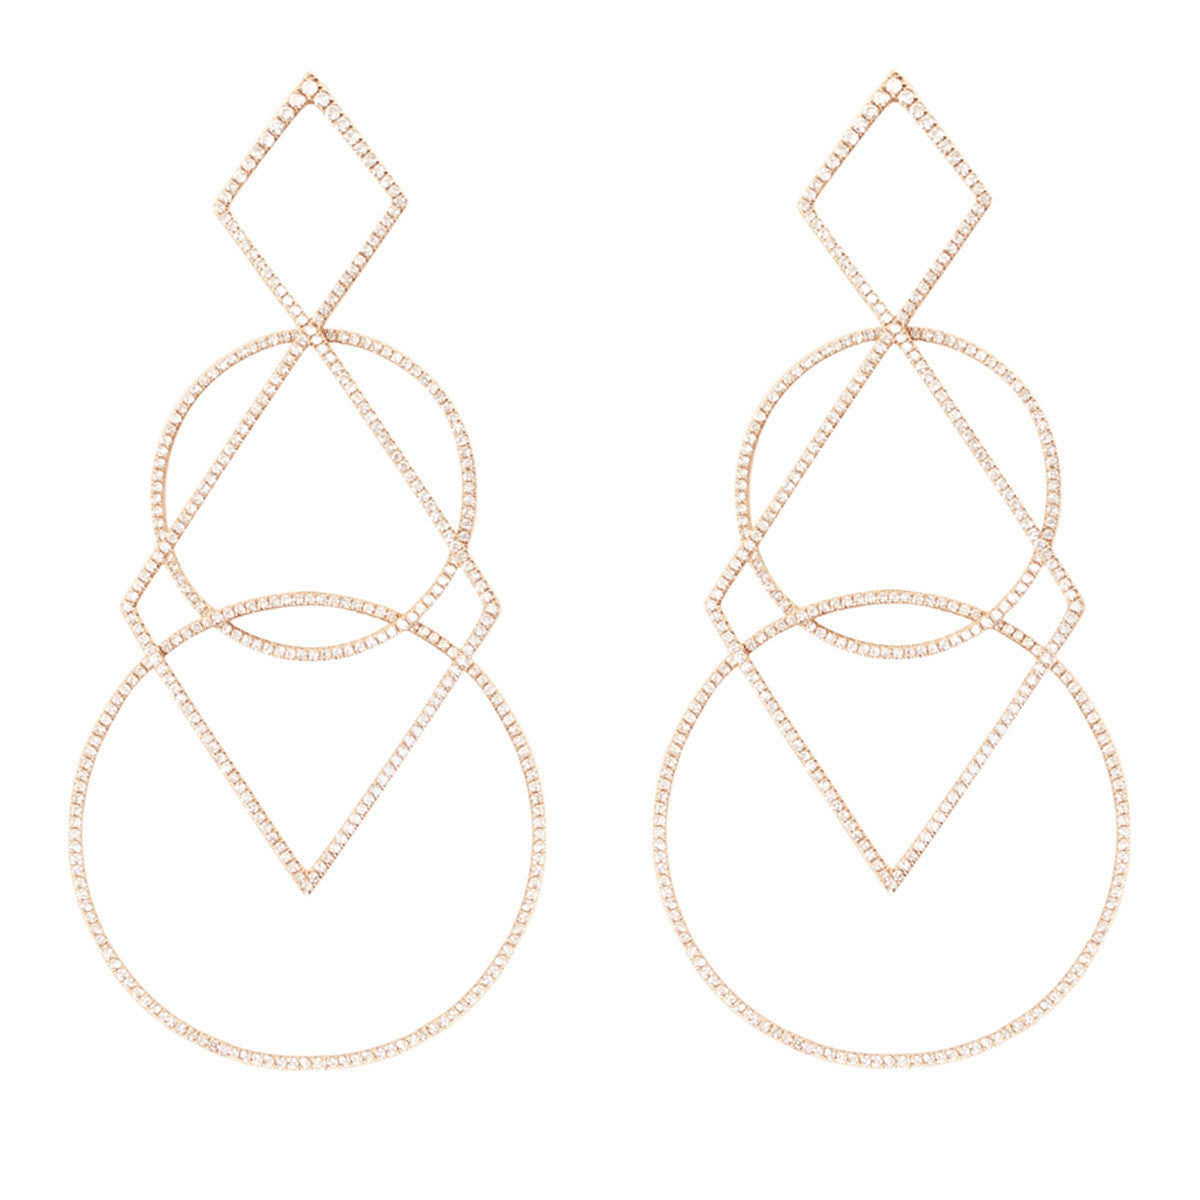 earrings styles to wear asymmetric season this statement now geometric offbeat holiday earring fashionista